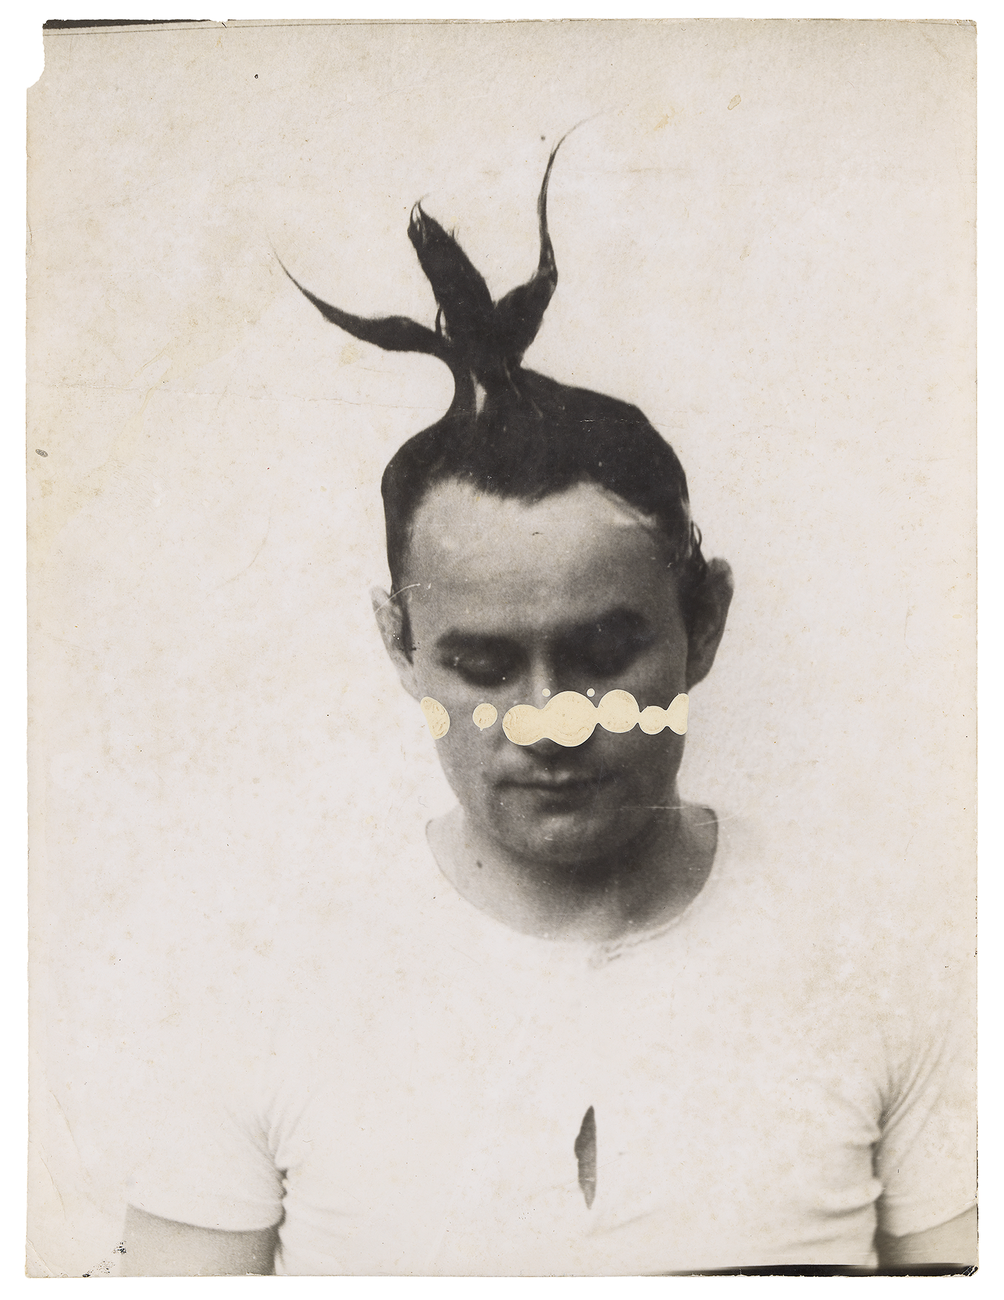 Johanne Brus, photo of young man with spiked hair and paint drips on his face